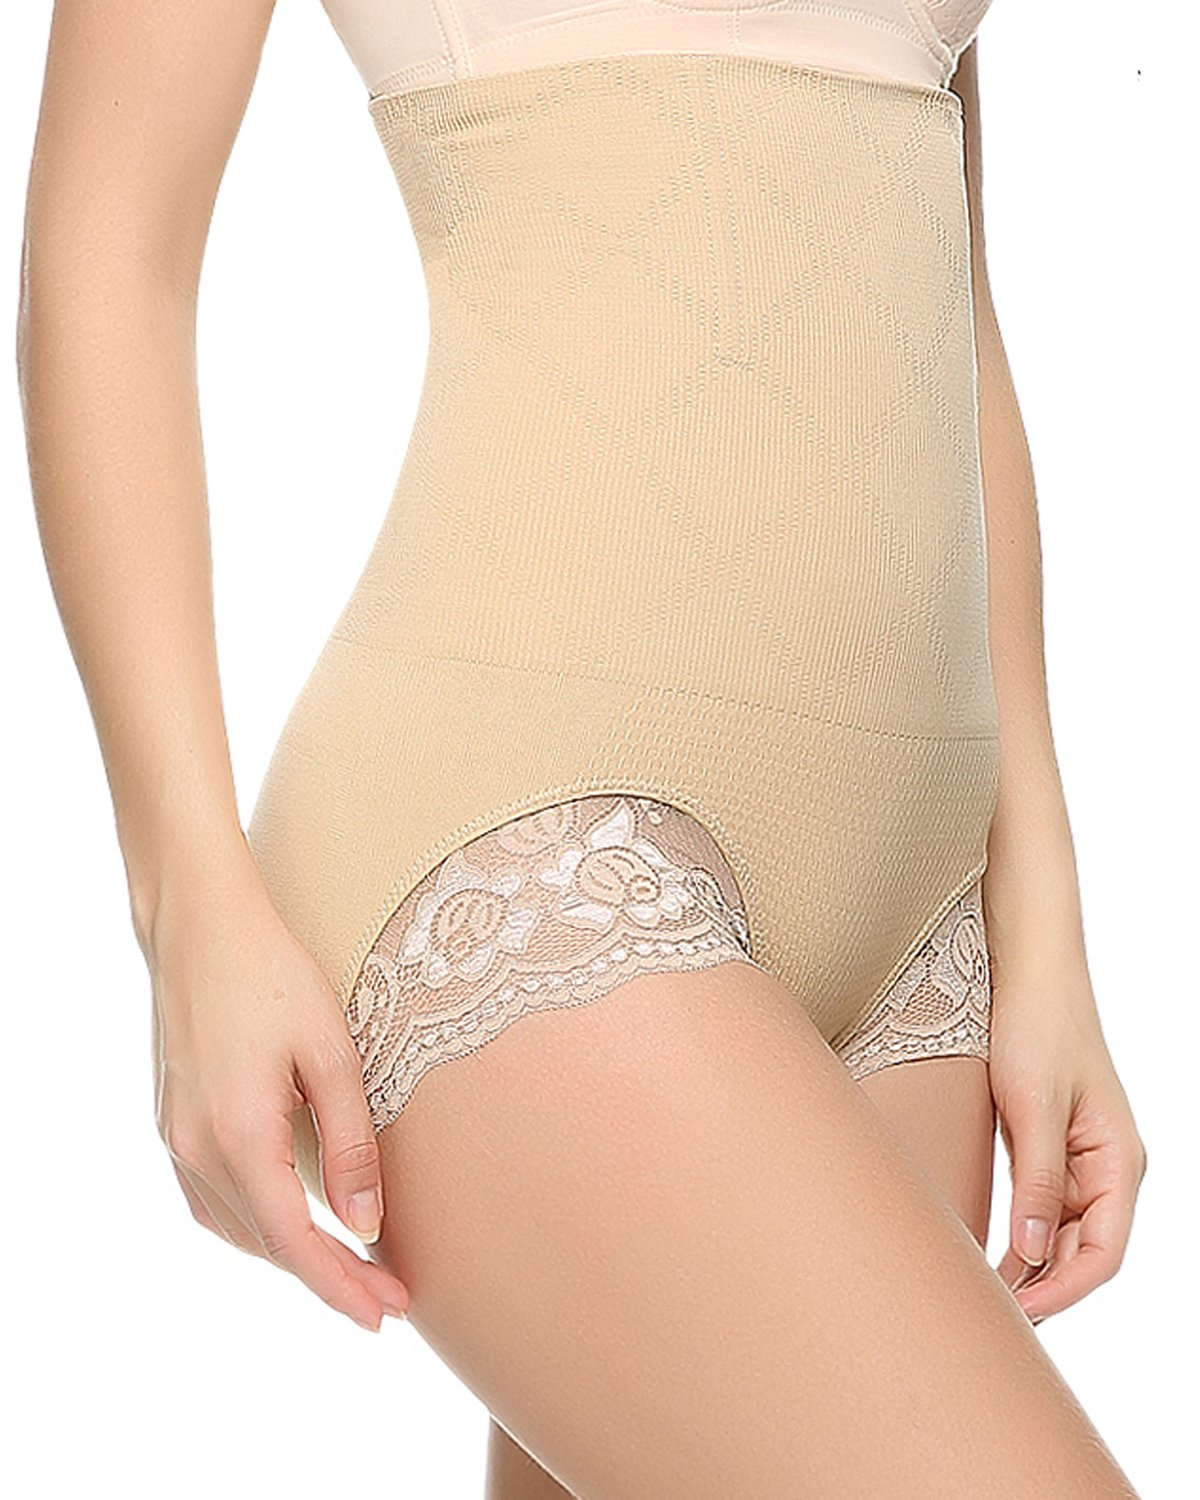 Junlan Cardio Body Shaper High Waist Tummy Control Butt Lifter Panty Slim J-12007-B-XL-UK-GG79